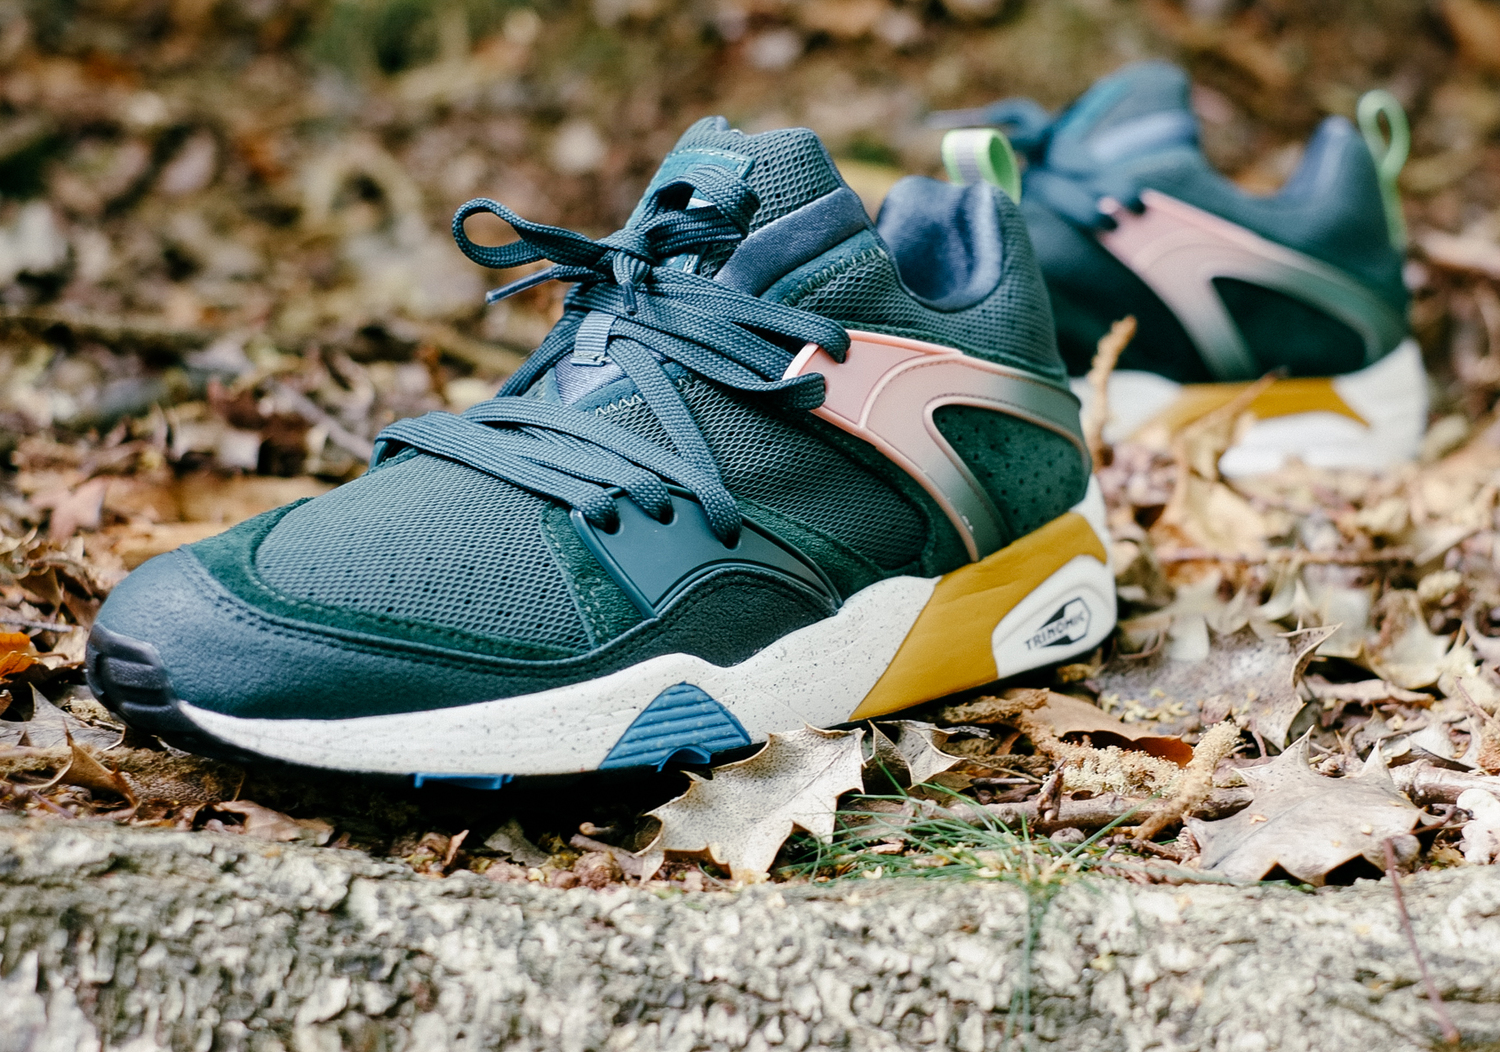 Size-Puma-Blaze-Glory-Jungle-2